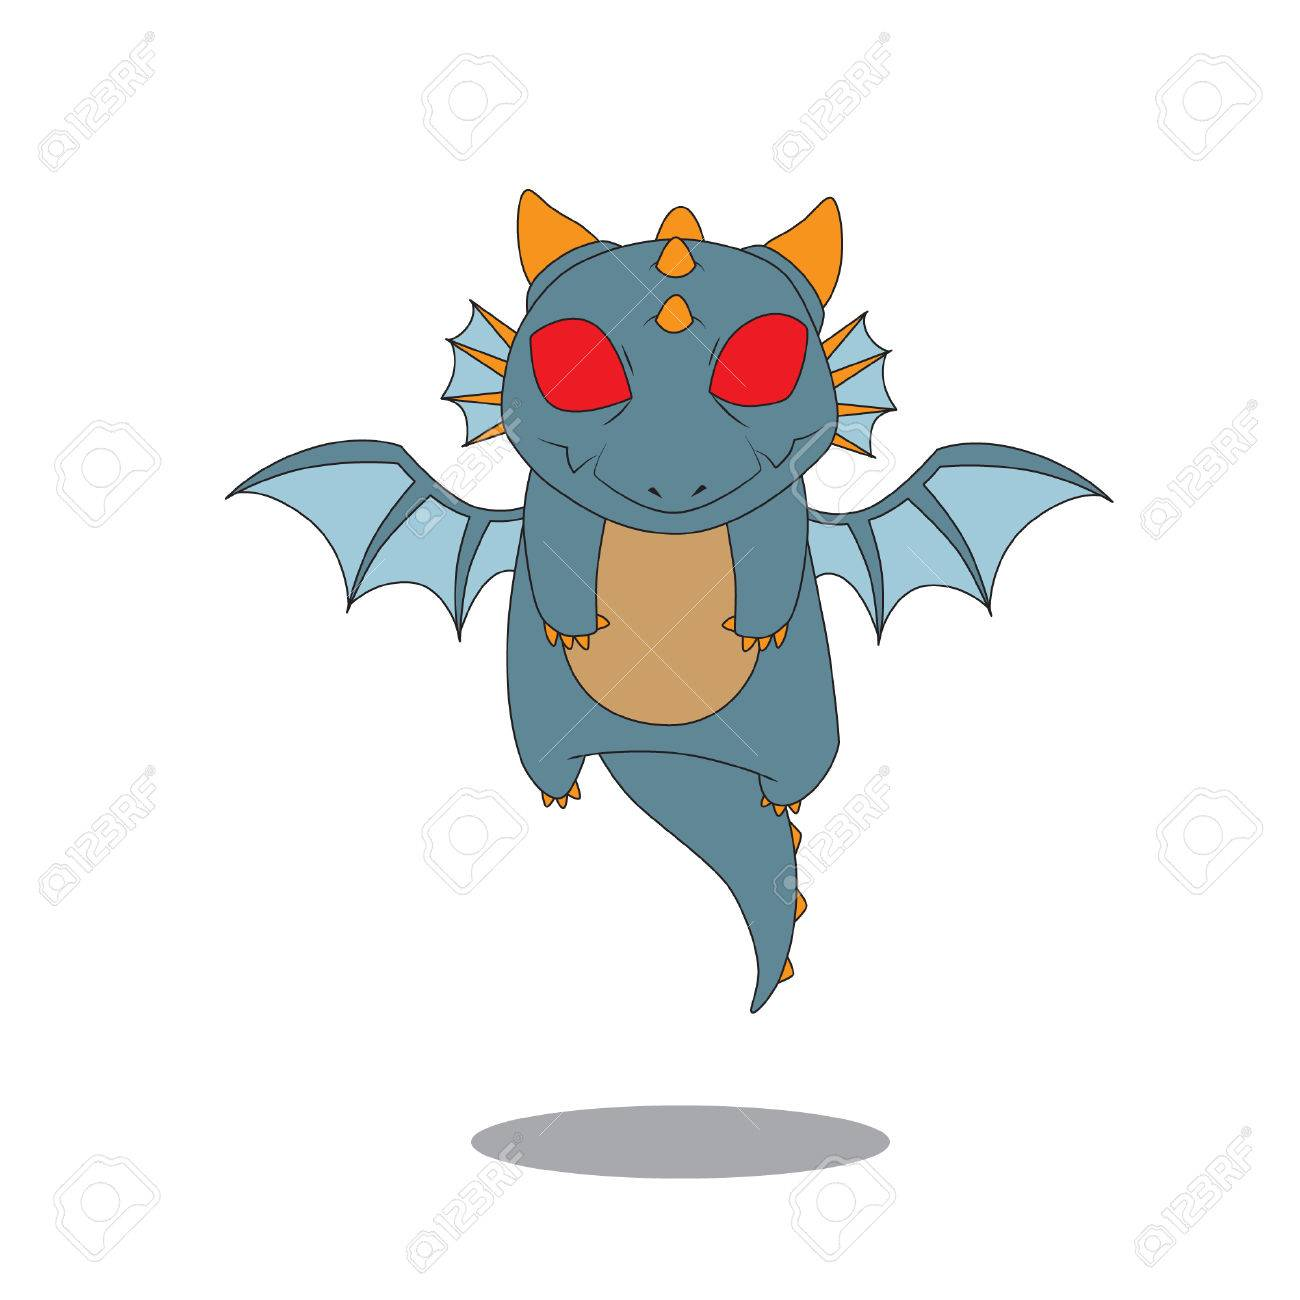 Cute Baby Dragon Flying Vector Stock Royalty Free Cliparts Vectors And Stock Illustration Image 70047903